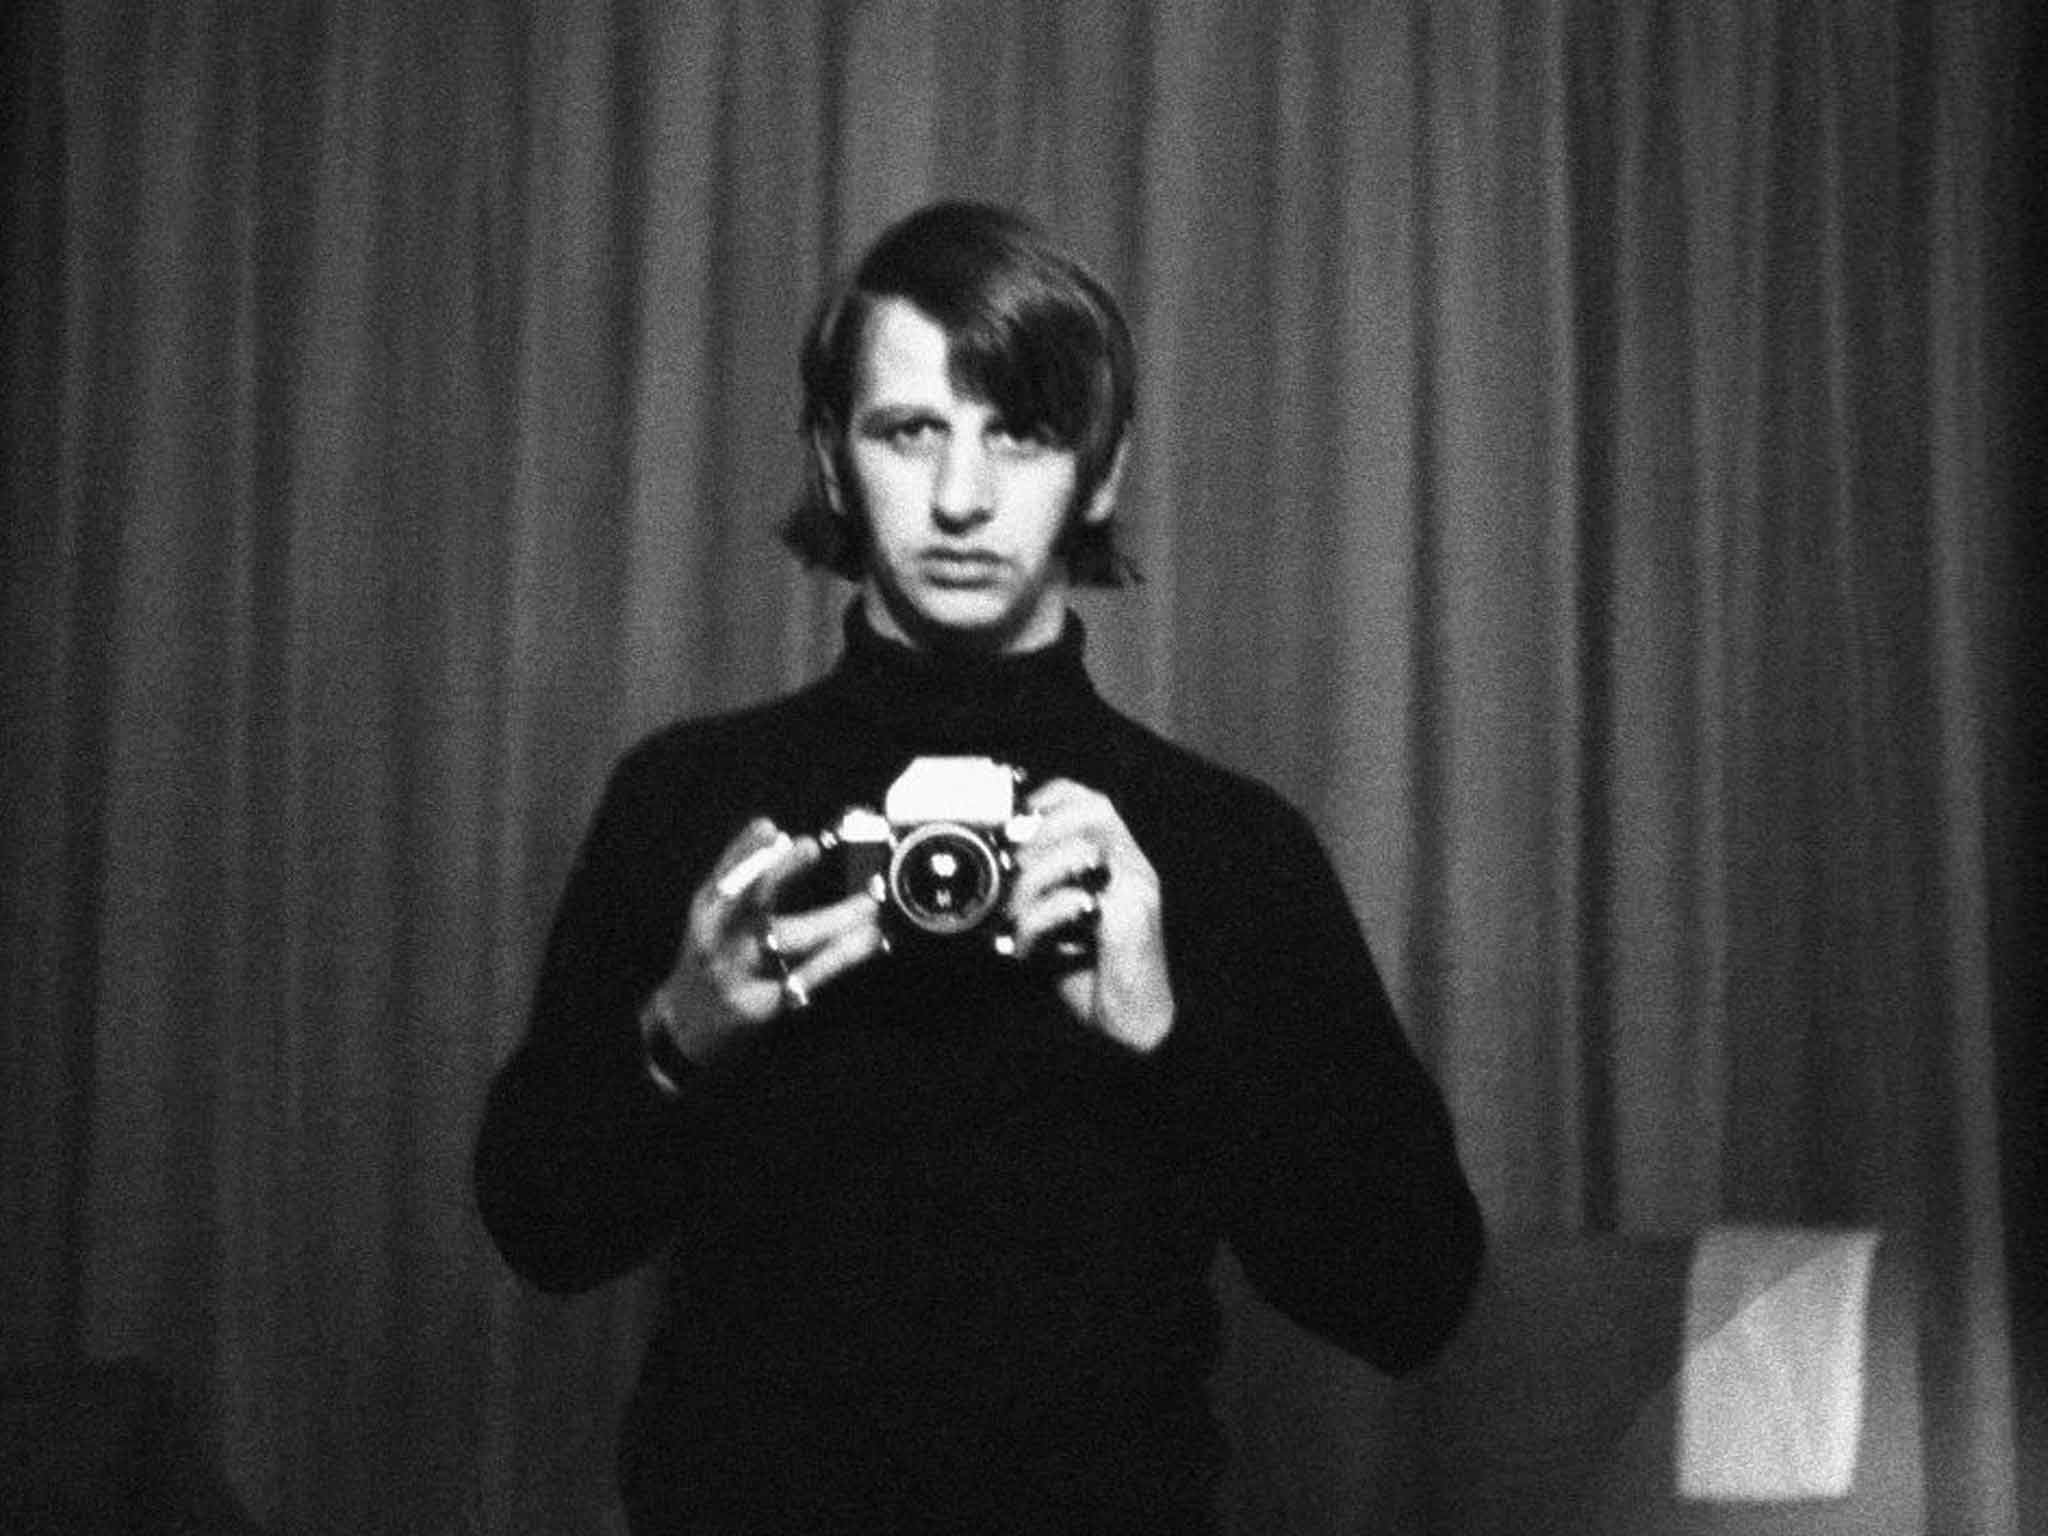 Ringo Starrs Photos Of The Beatles Bands Best Photographer On His New Memoir